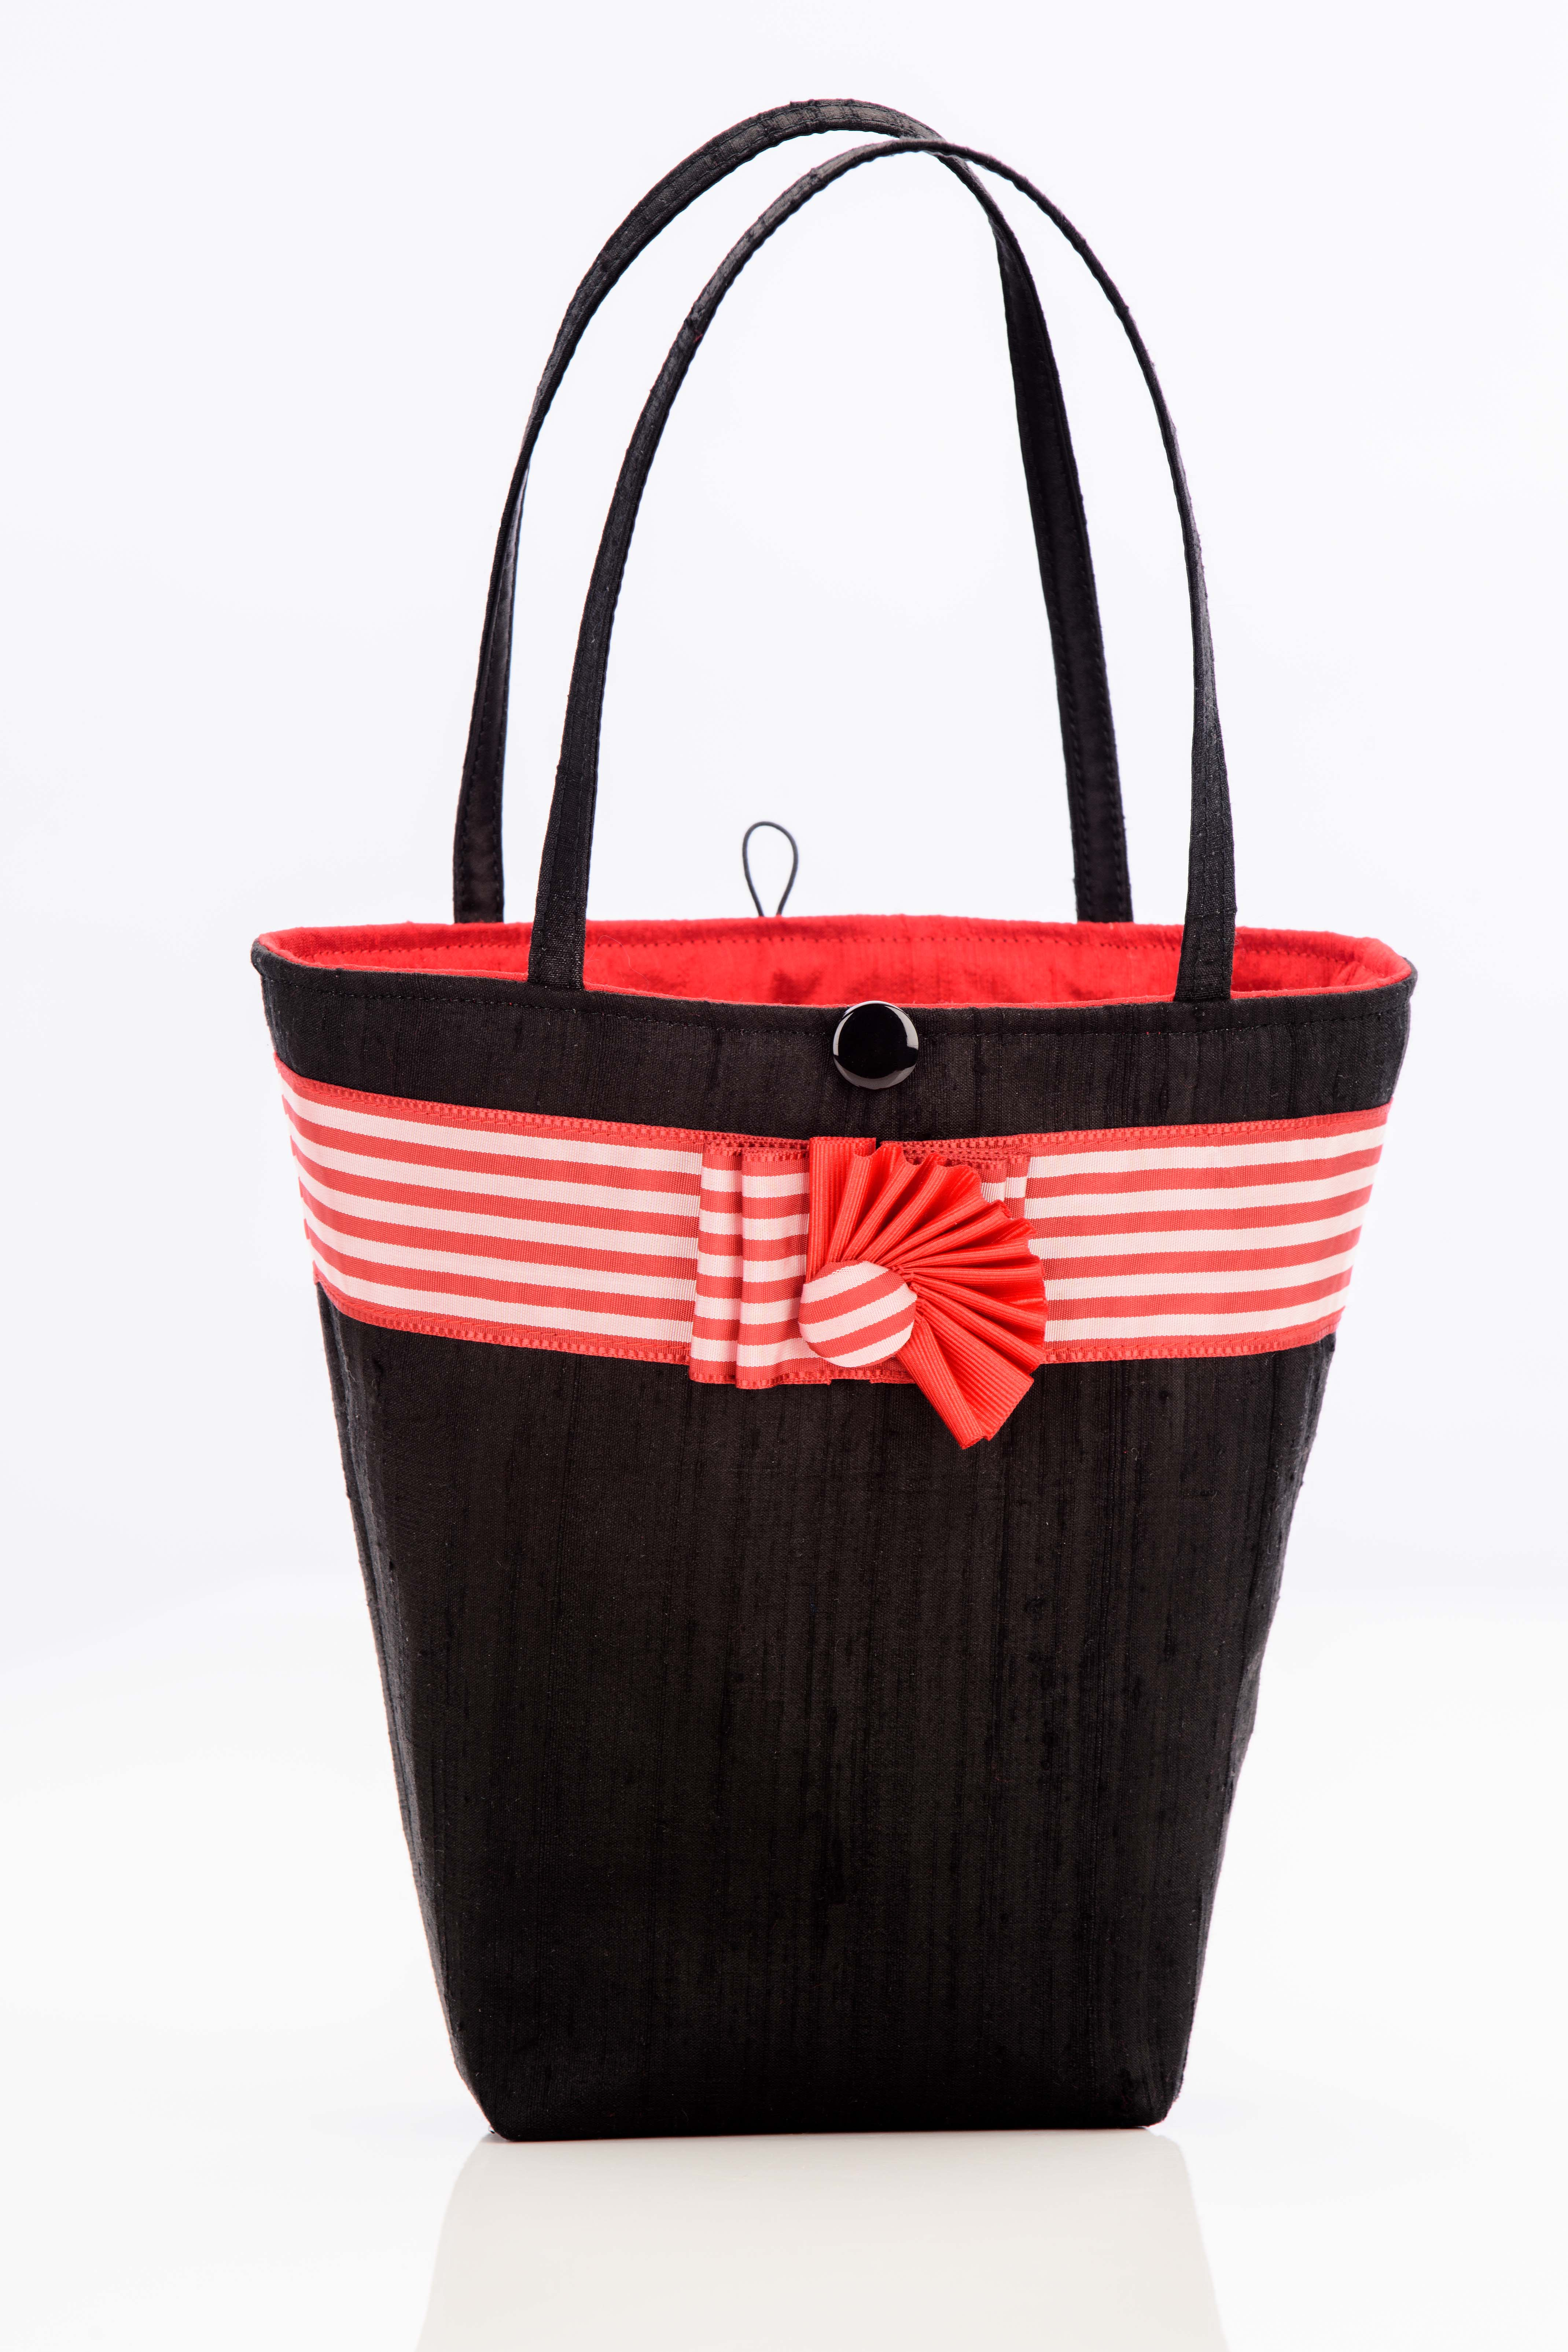 Black silk handbag with red and white striped trim